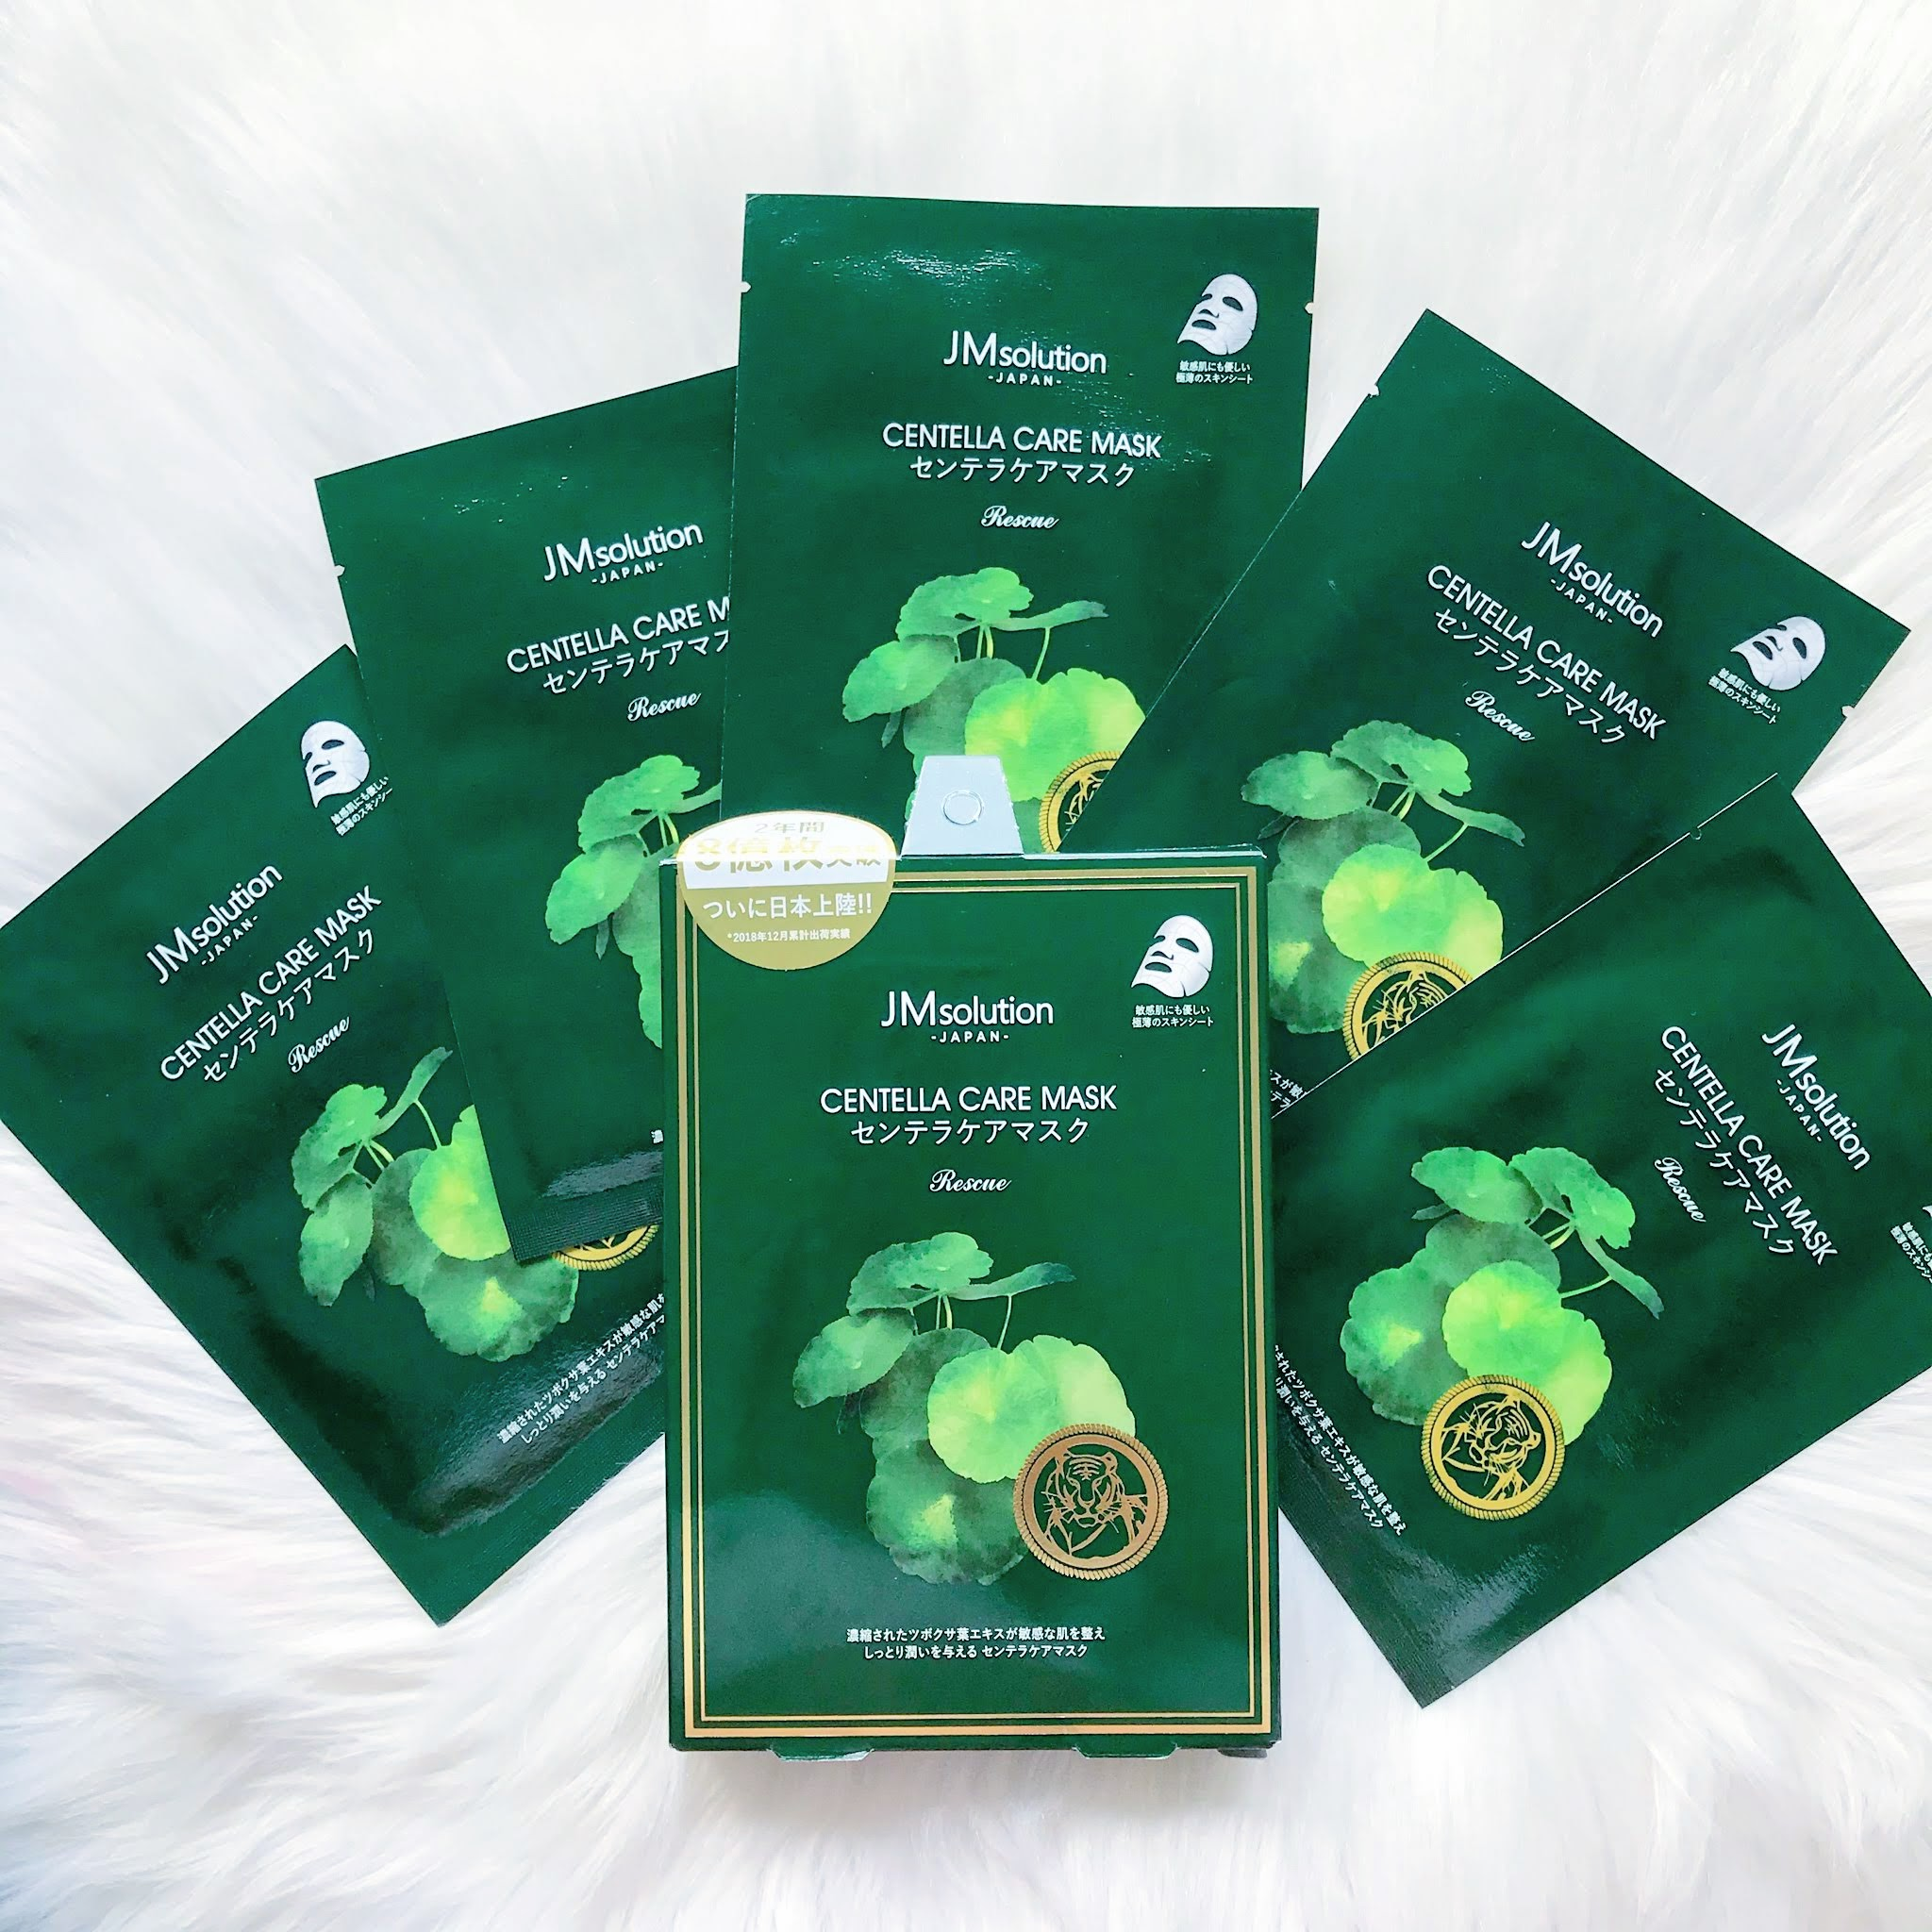 JMsolution Japan Centella Care Mask | Review